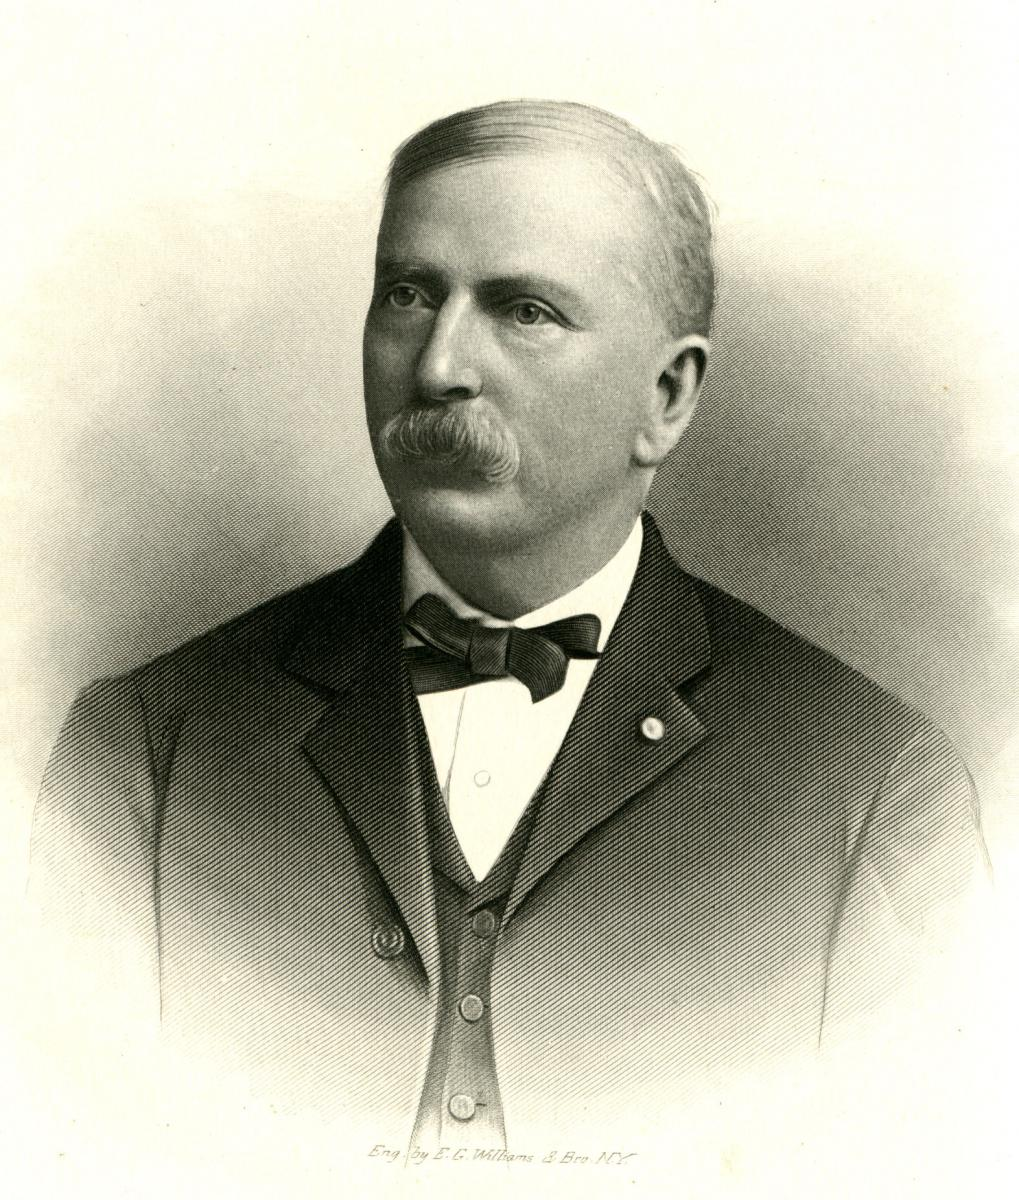 Engraved portrait of Wilson Gray Lamb, from Samuel Ashe's <i>Biographical History of North Carolina</i>, Volume 7, [p. 280-281], published 1908 by Charles L. Van Noppen Publisher, Greensboro, North Carolina.  From the collections of the Government & Heritage Library, State Library of North Carolina.